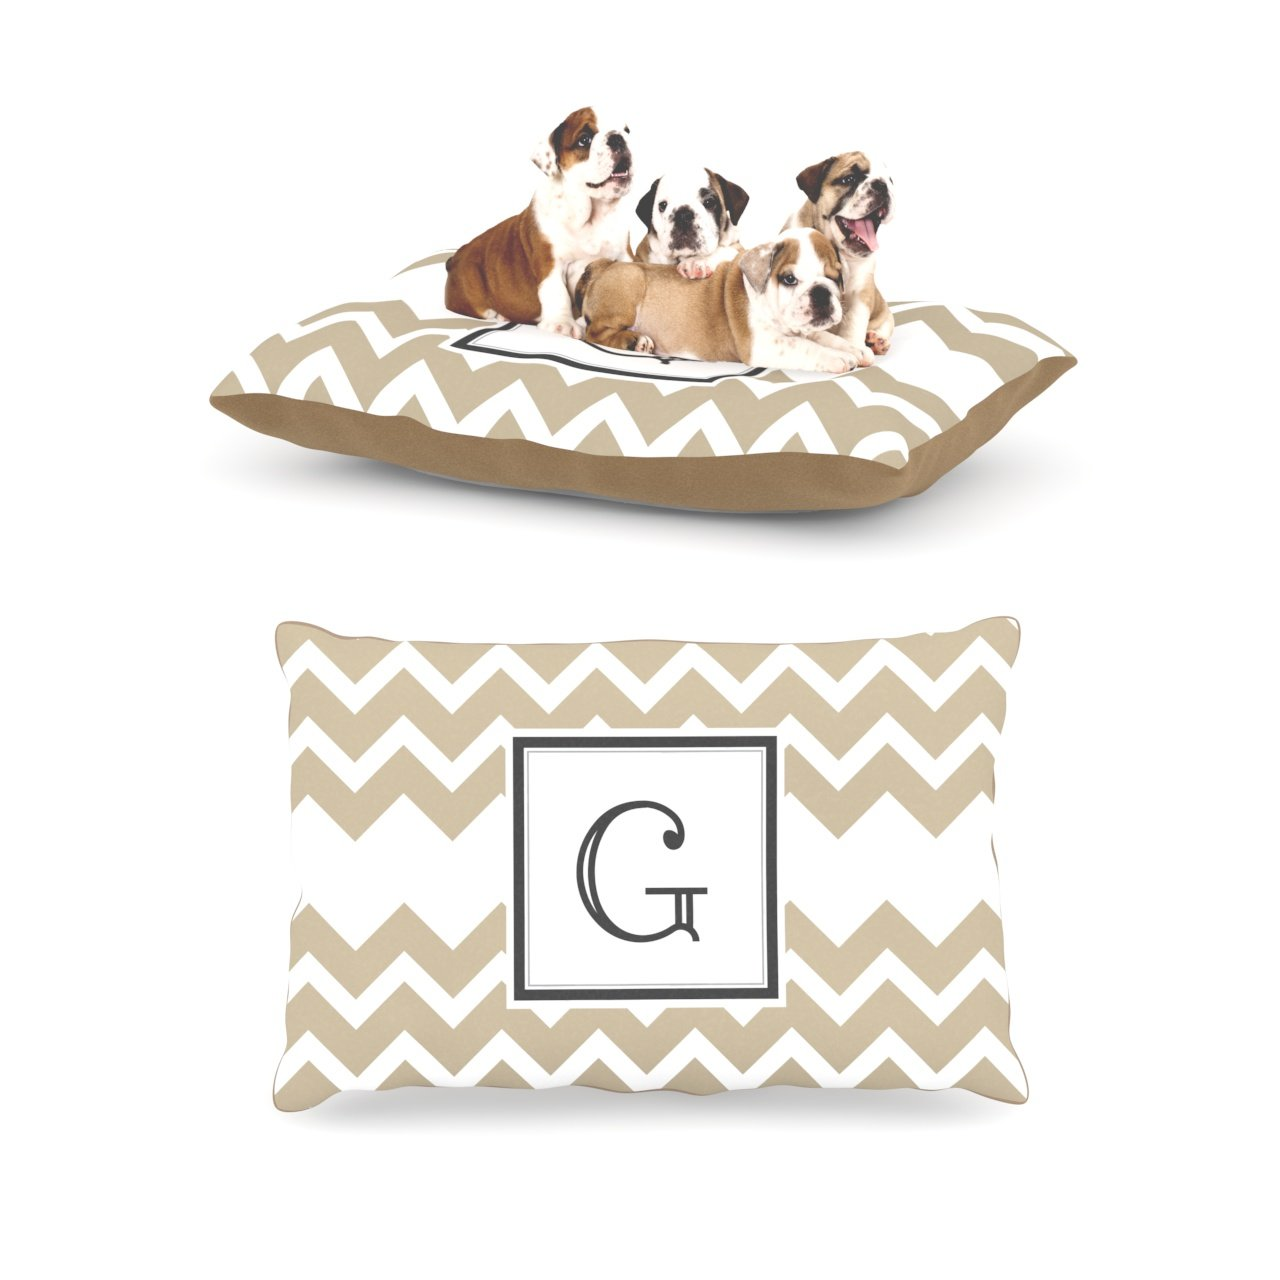 G L 30 Inches x 40 Inches G L 30 Inches x 40 Inches Kess InHouse Chevron Tan Fleece Dog Bed, 30 by 40-Inch, Monogram Letter-G